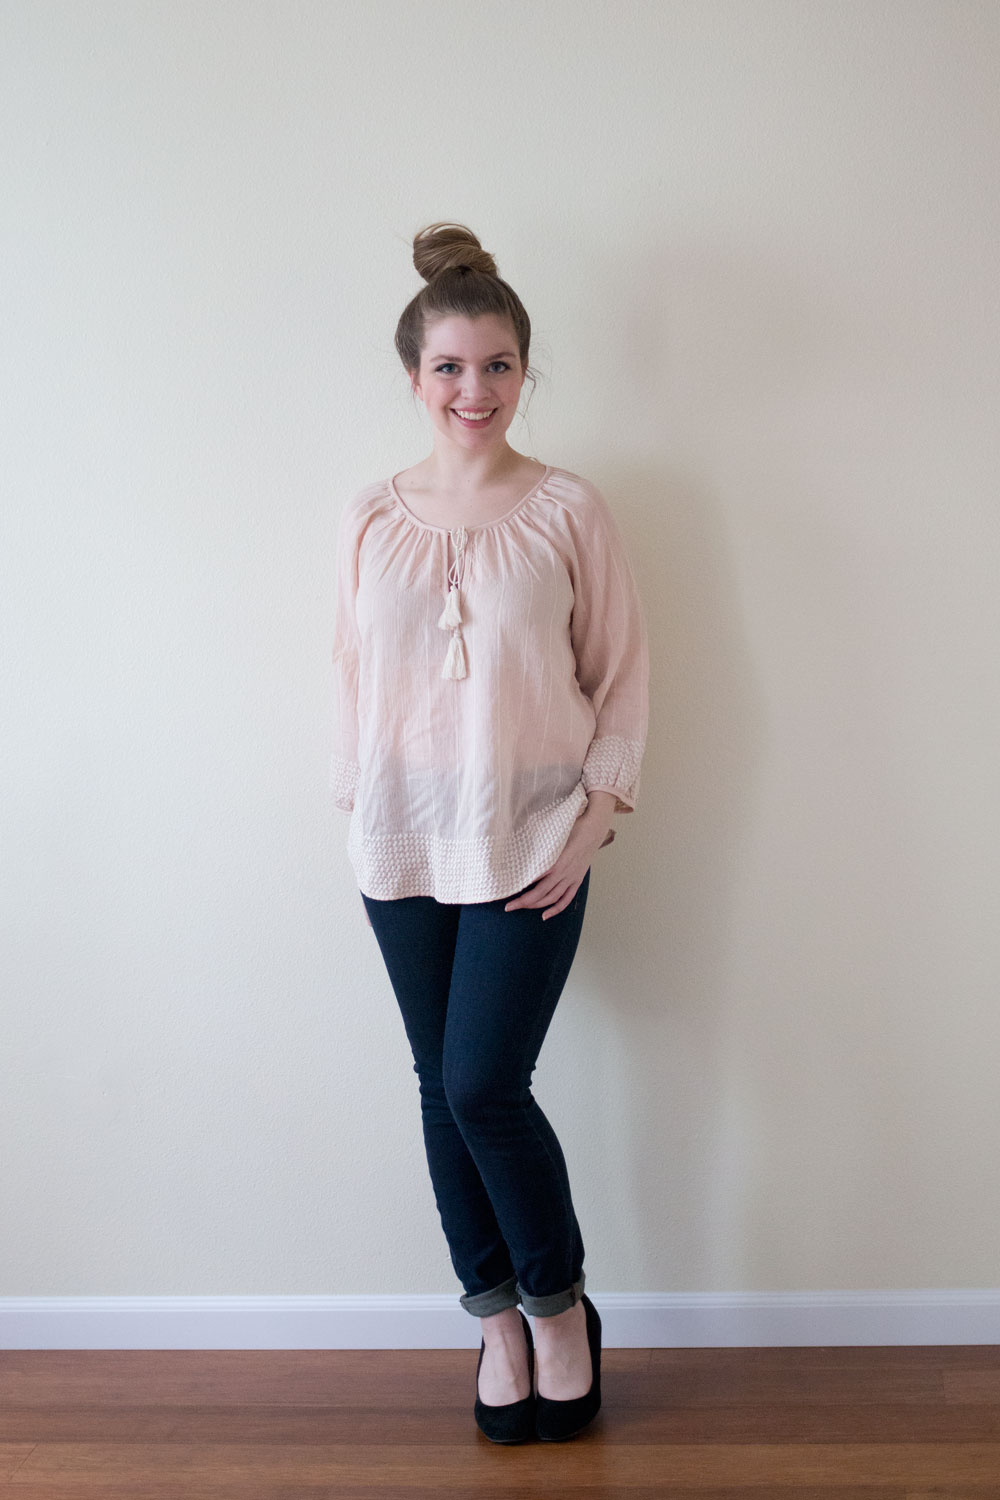 Golden Tote March 2015: Love Stitch Tassel Top / hellorigby seattle fashion blog